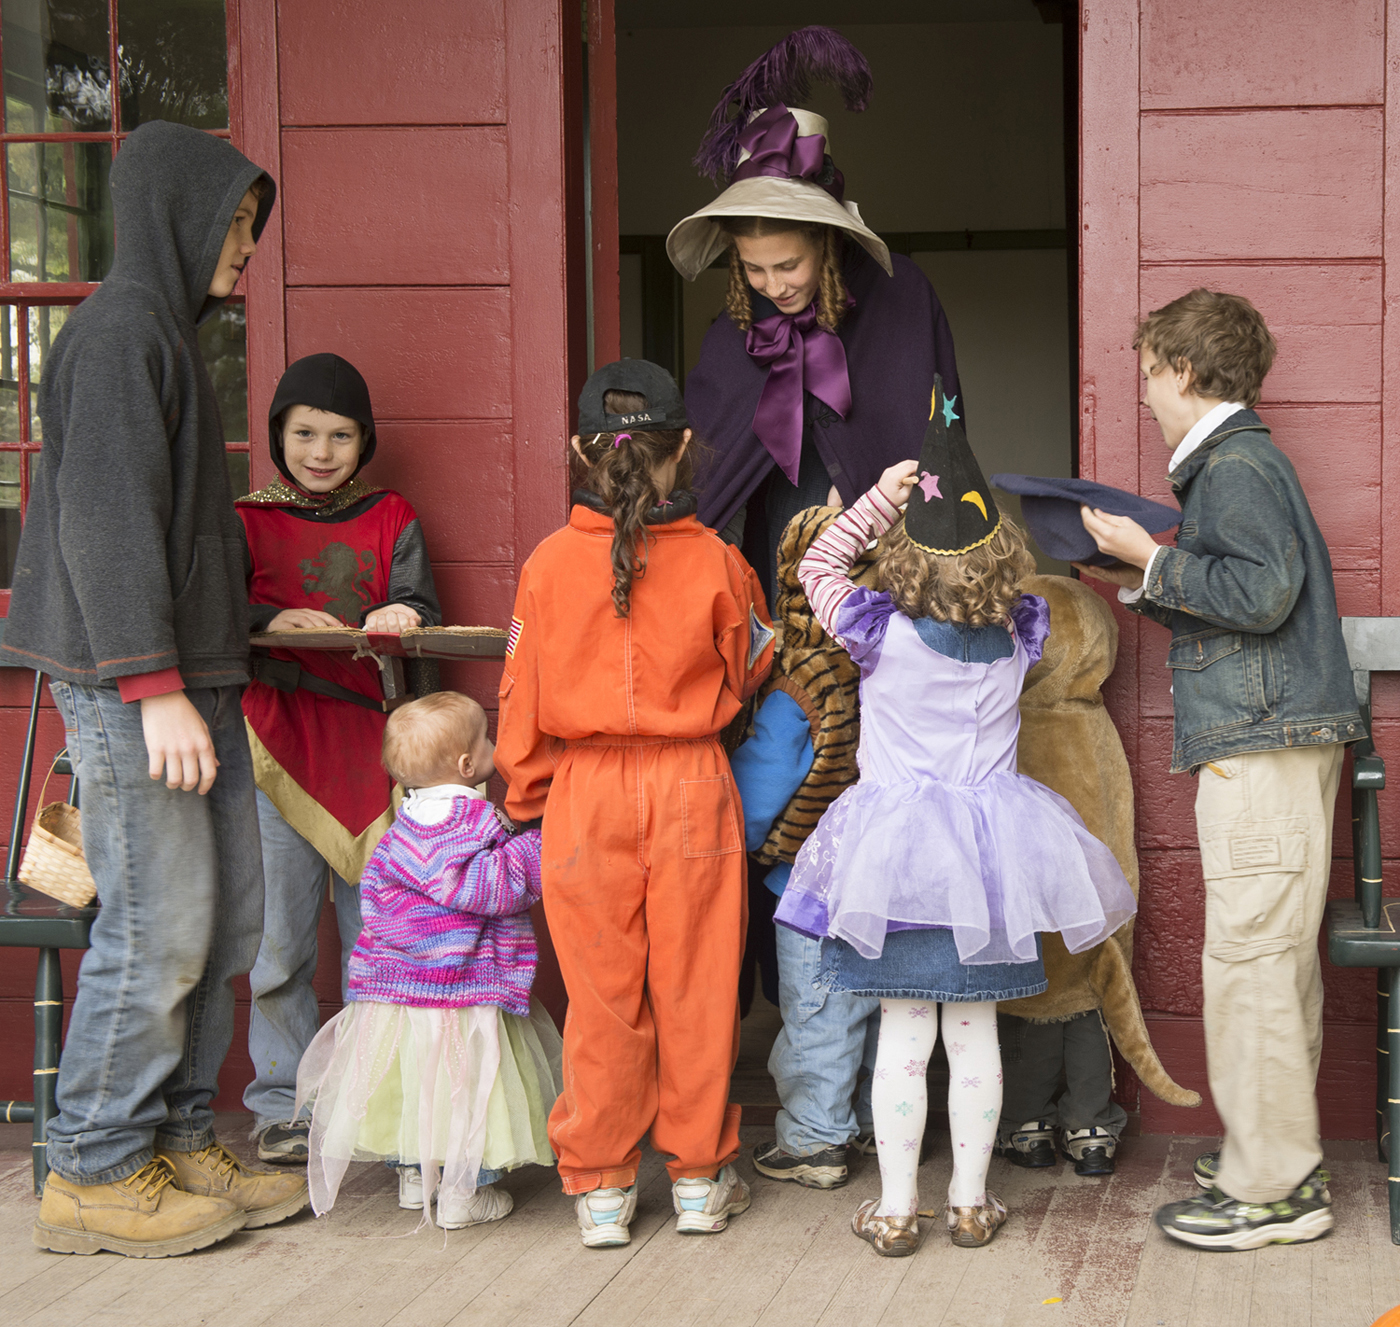 Trick-or-treaters are welcomed and treated to goodies during Genesee Country Village & Museum's Trick-or-Treating in the Village. Provided photo